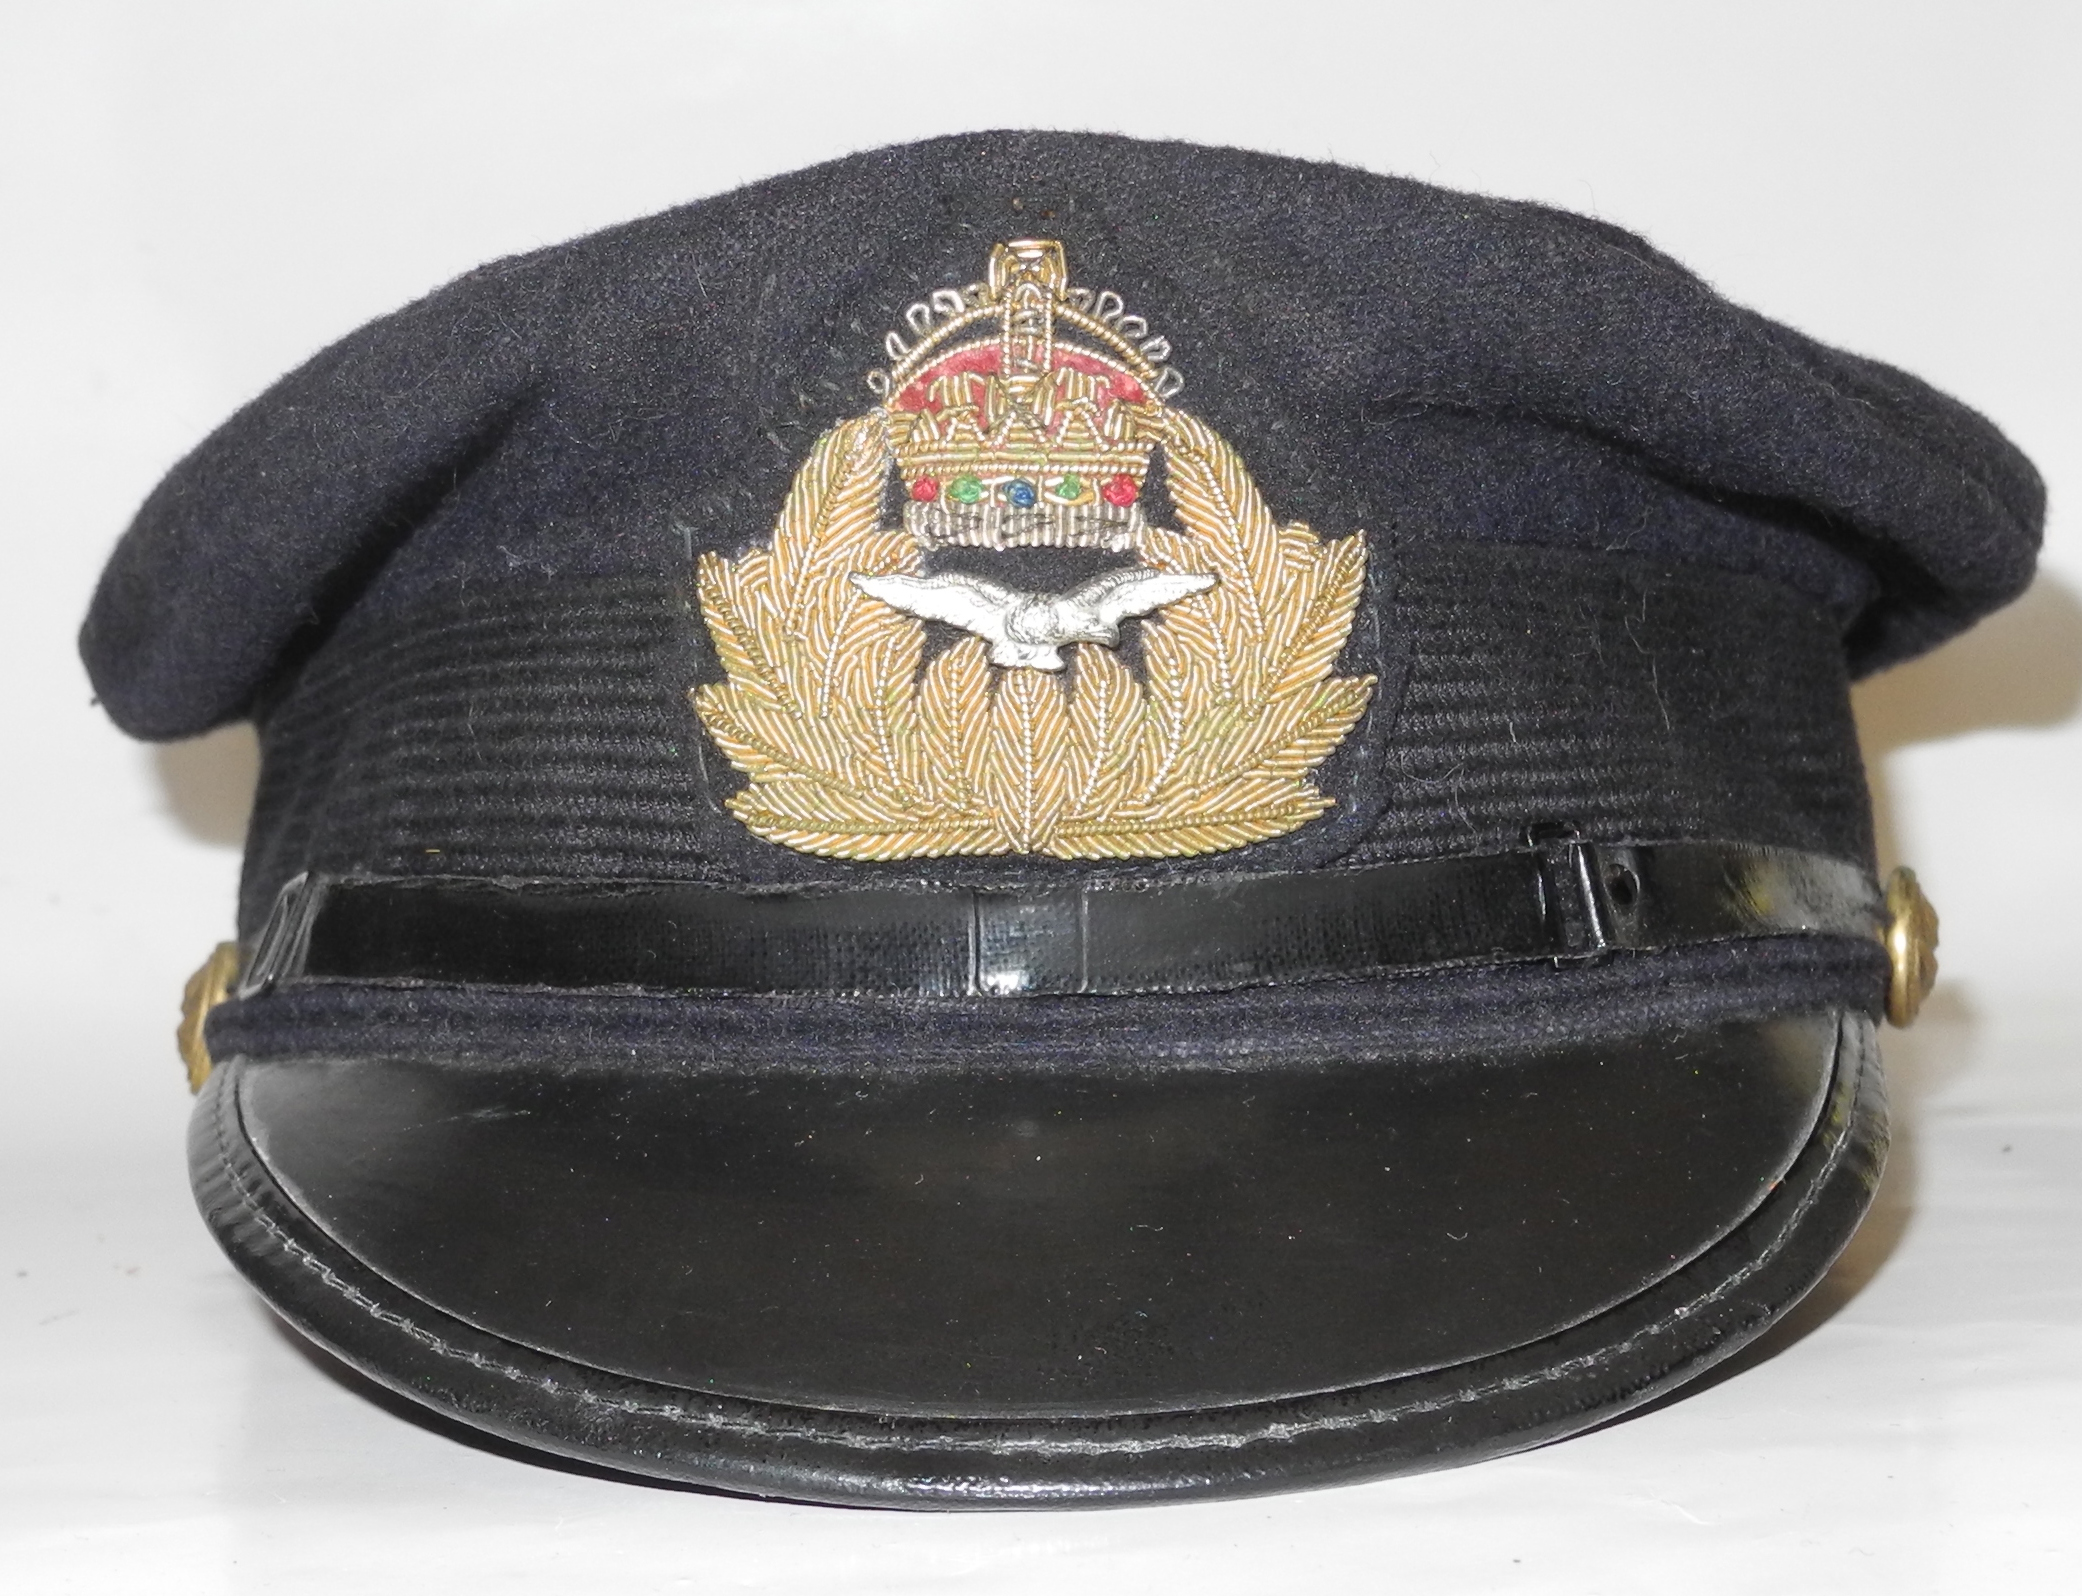 RNAS officer's cap with reproduction badge3